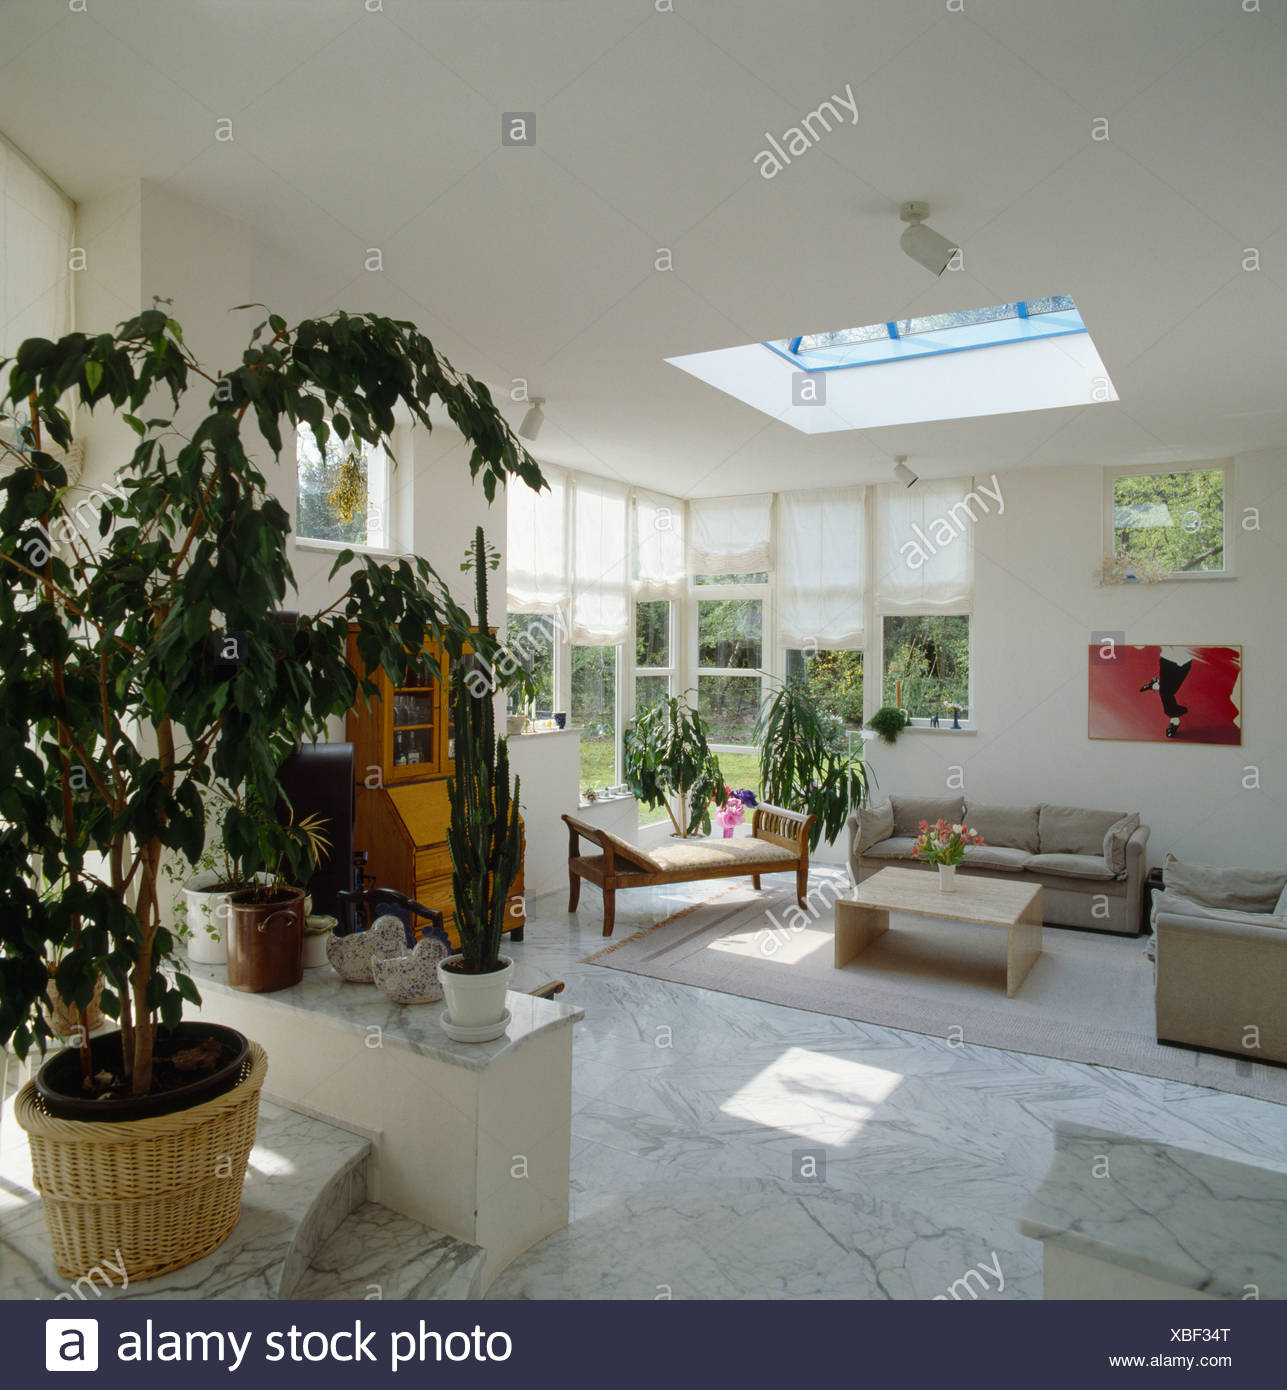 Beige Sofas And Marble Floor Tiles In Modern White Living Room Extension With Tall Houseplant Stock Photo Alamy